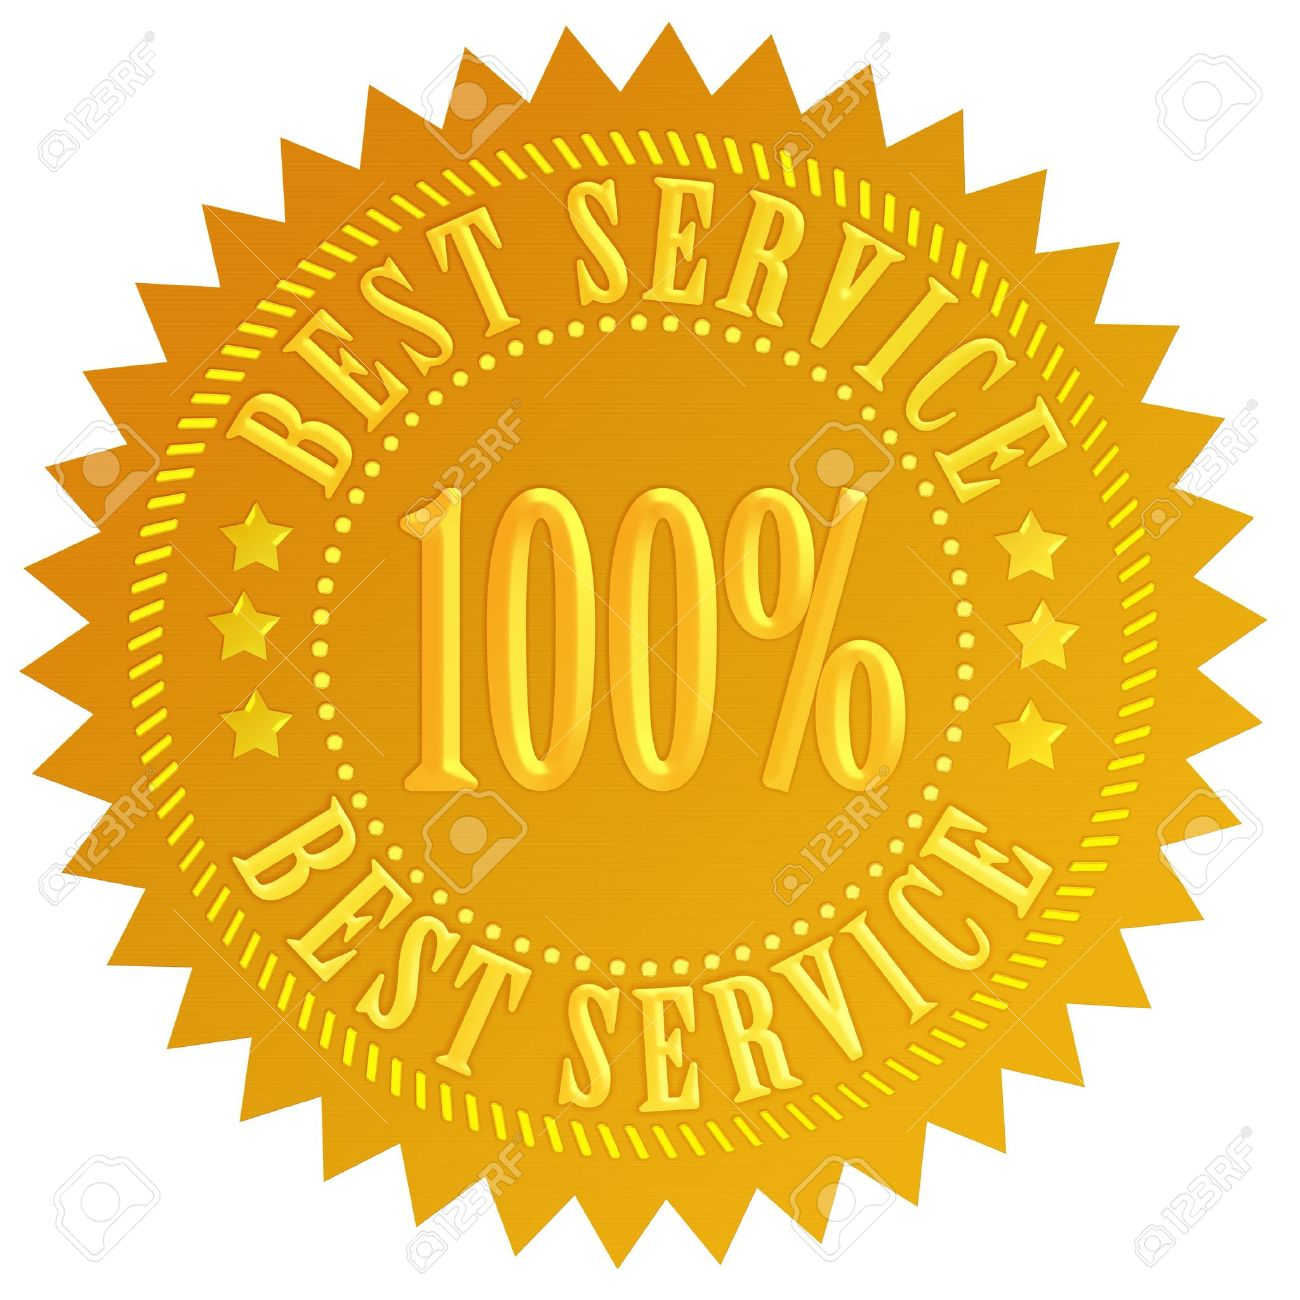 best service seal stock photo picture and royalty free image image